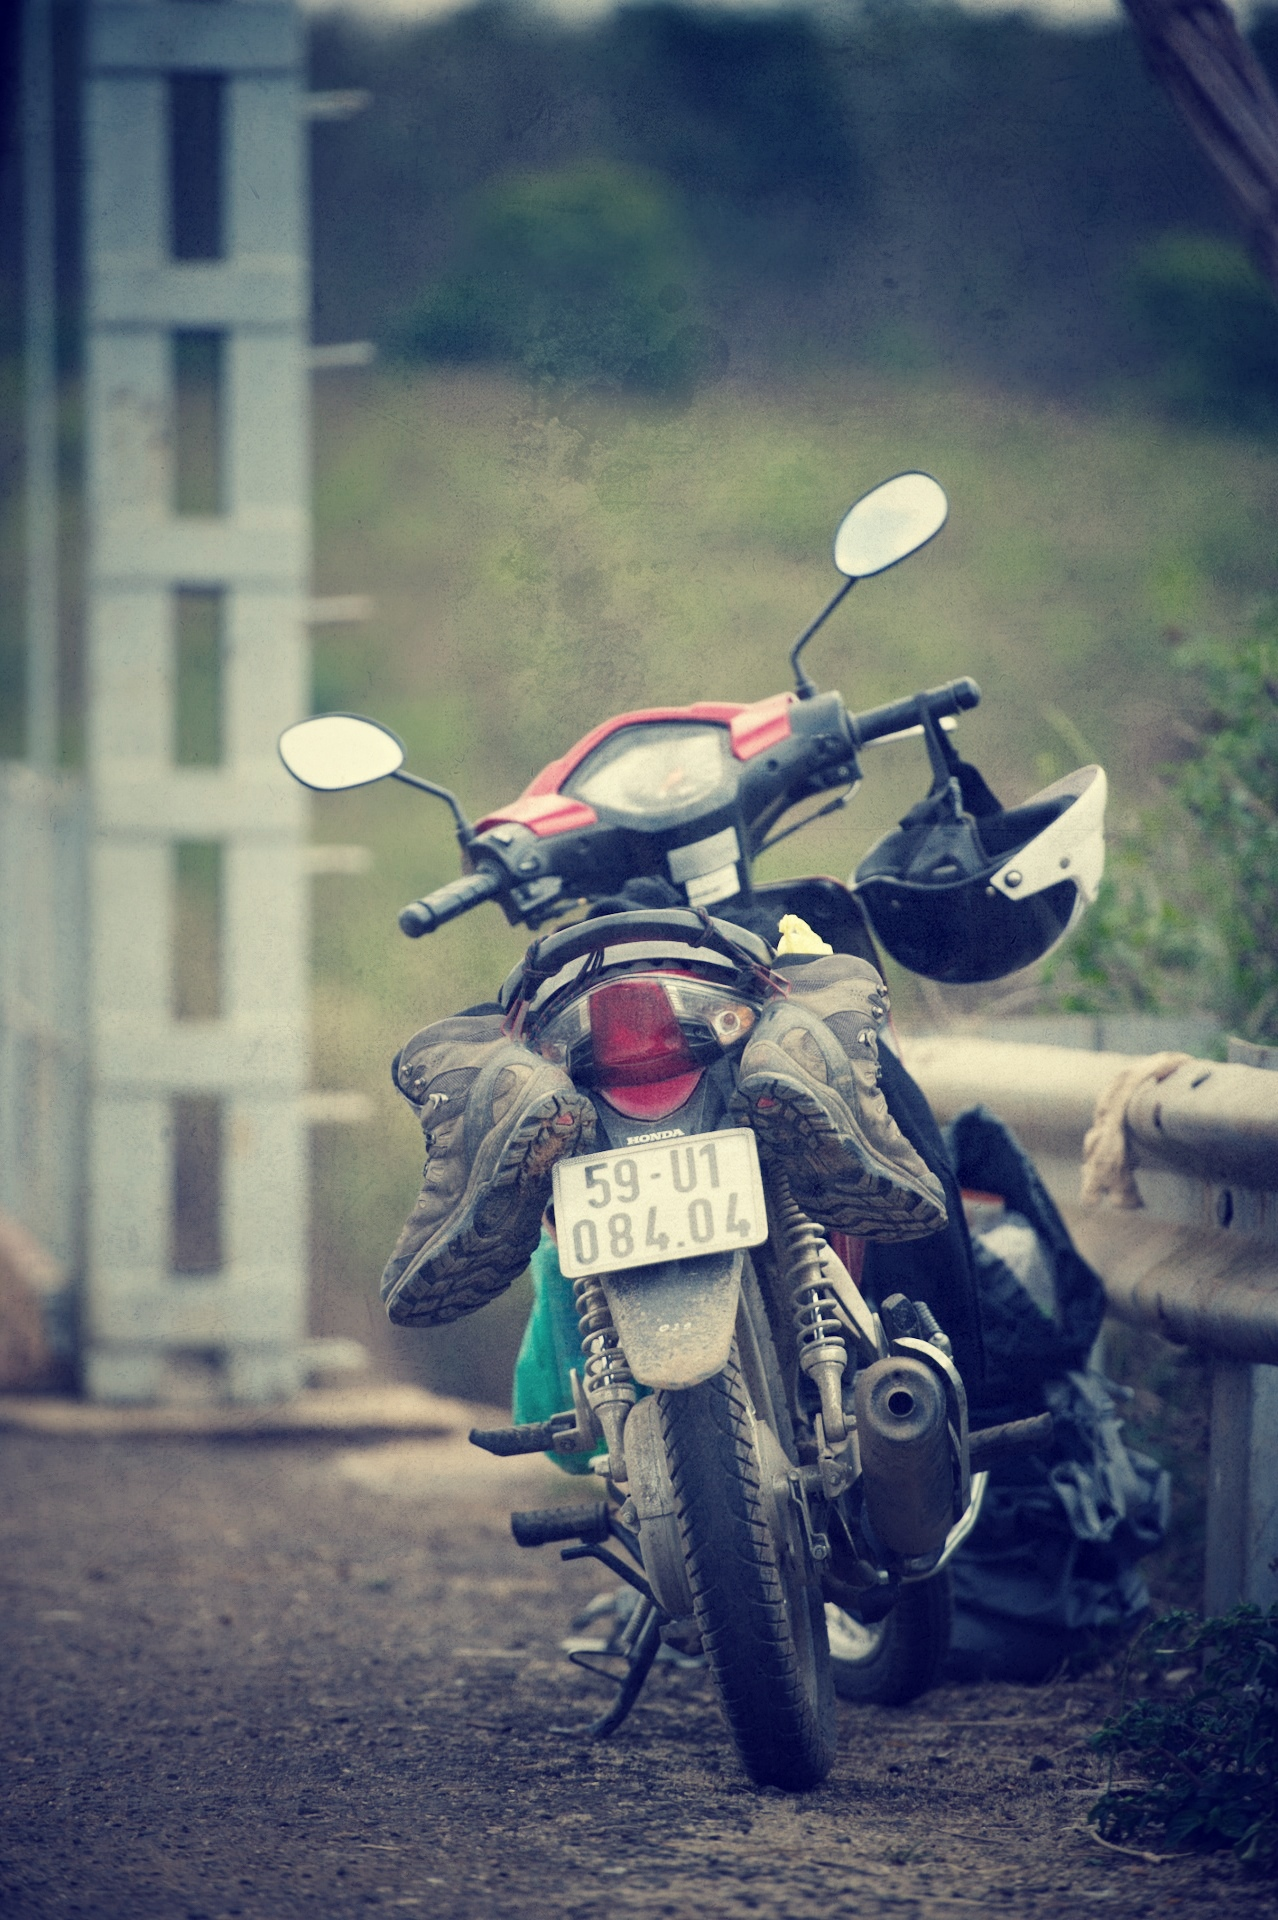 My small 125cc motorbike in Vietnam, way back in 2012.